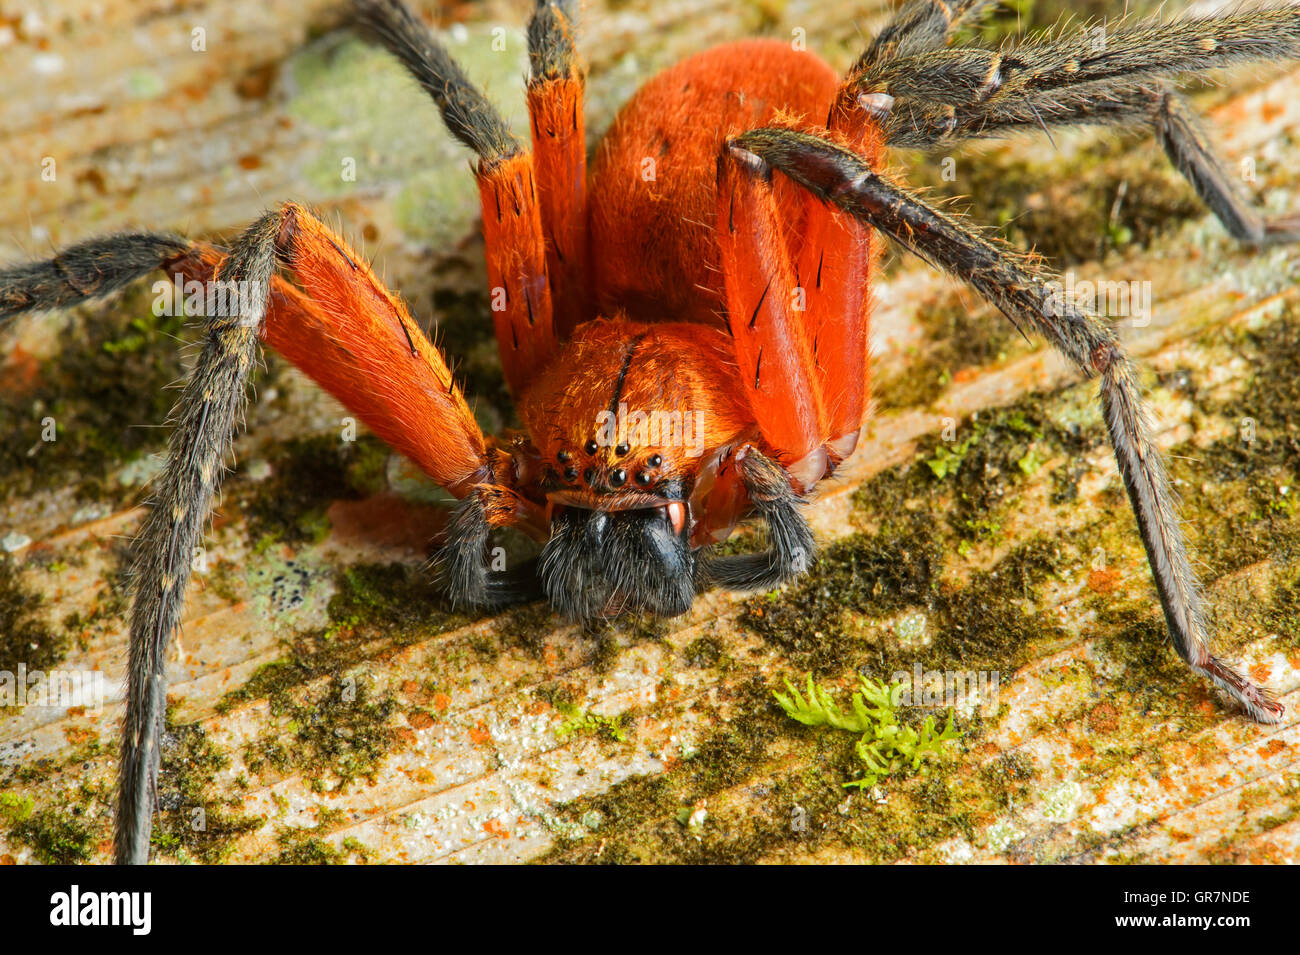 Giant Crab Spider, Amazon Rainforest, Ecuador - Stock Image